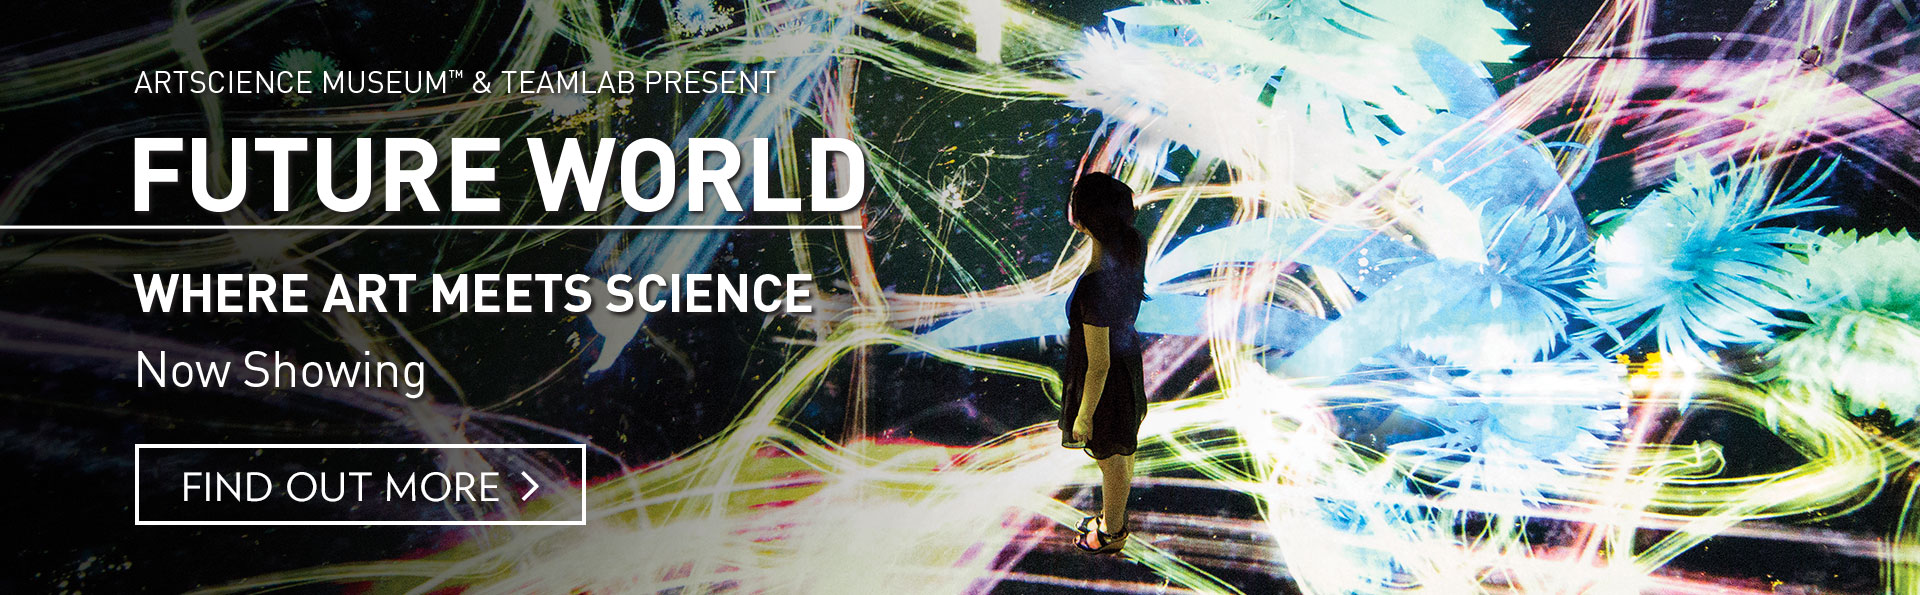 Future World: Where Art Meets Science